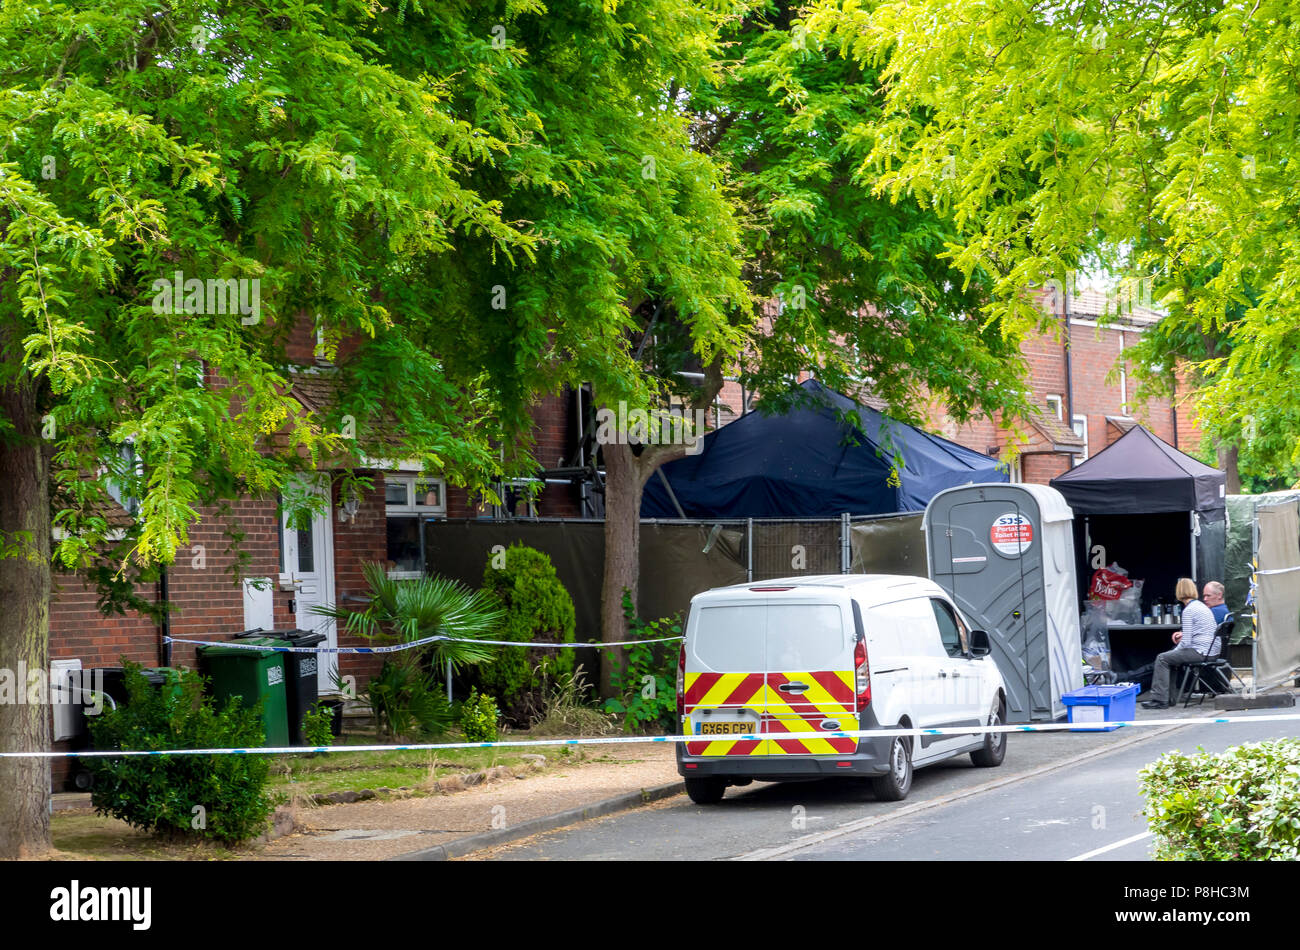 Croxden Way, Willingdon, Eastbourne, East Sussex, UK. 12th July 2018. Police have launched a murder investigation after the death of two people in a house fire in Eastbourne East Sussex. Officers and forensic experts remain at the scene of Tuesdays fatal fire. The fire in Croxden Way, Willingdon, Eastbourne started in the early hours of Tuesday morning. The victims have been named by police as Gina Ingles and her 4 year old son. Gina Ingles boyfriend Toby Jarrett survived the fire but remains in hospital in an induced coma with burns. Credit: Newspics UK South/Alamy Live News - Stock Image